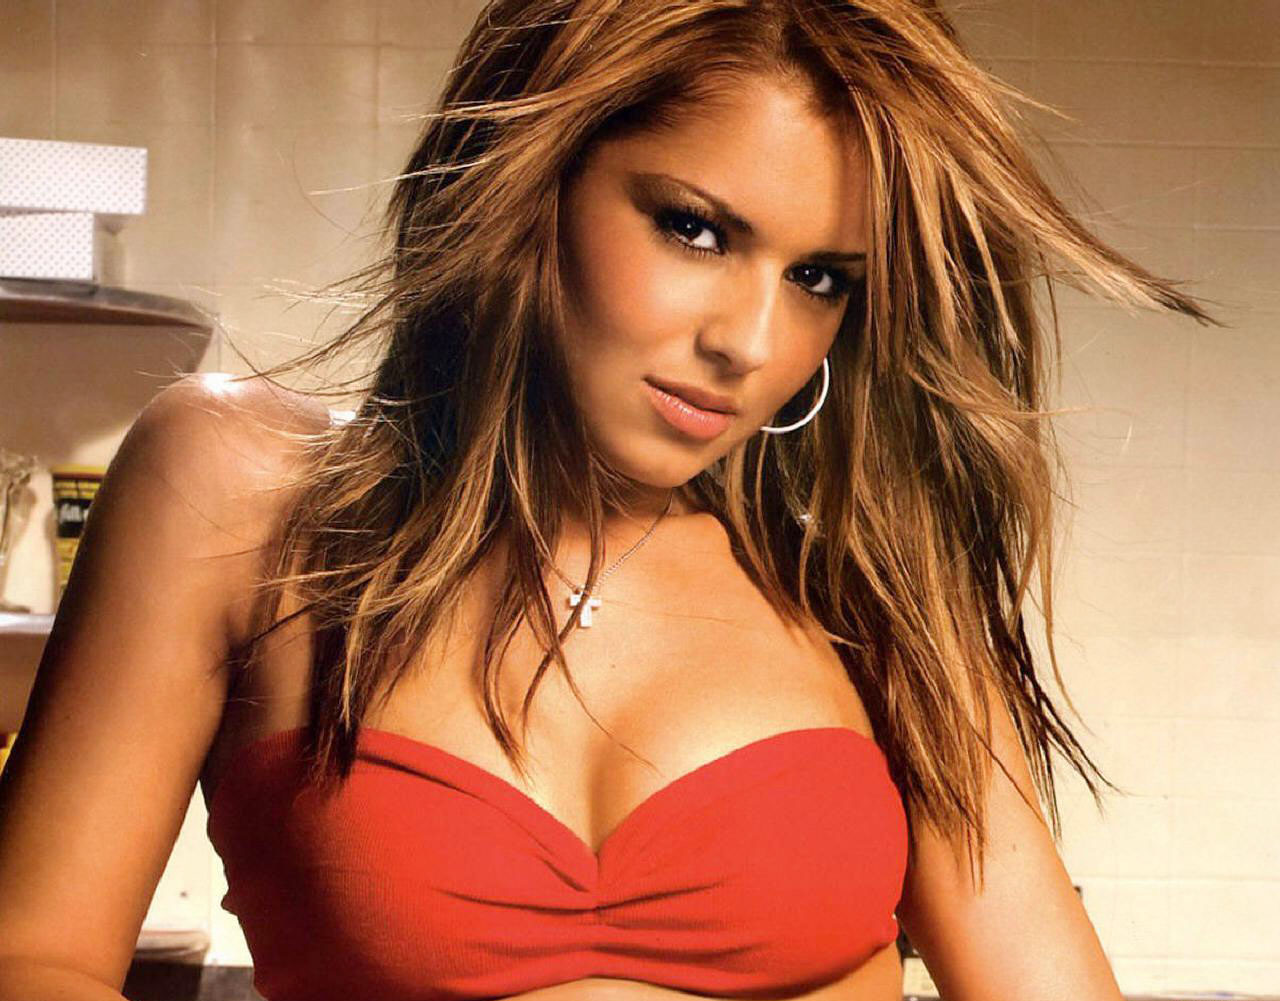 Cheryl Cole hot woman